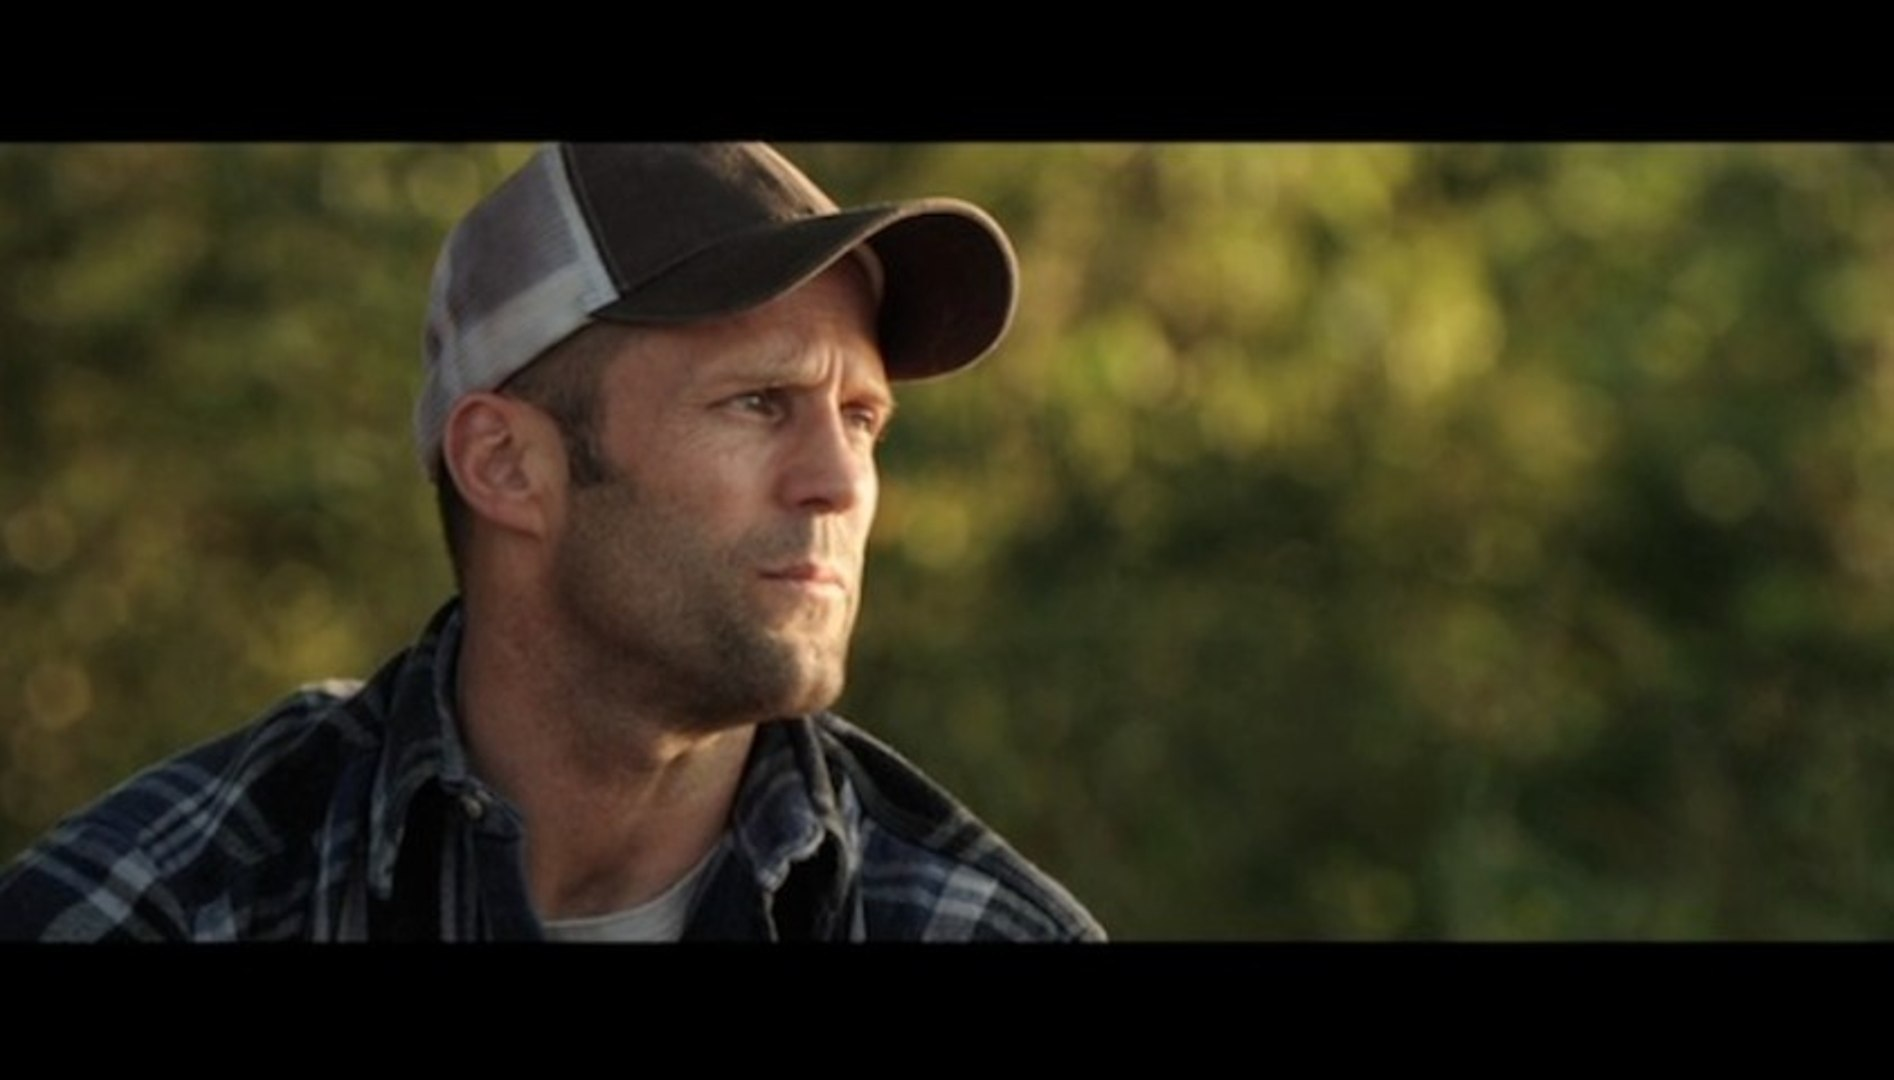 Homefront Trailer Starring Jason Statham And James Franco Video Dailymotion